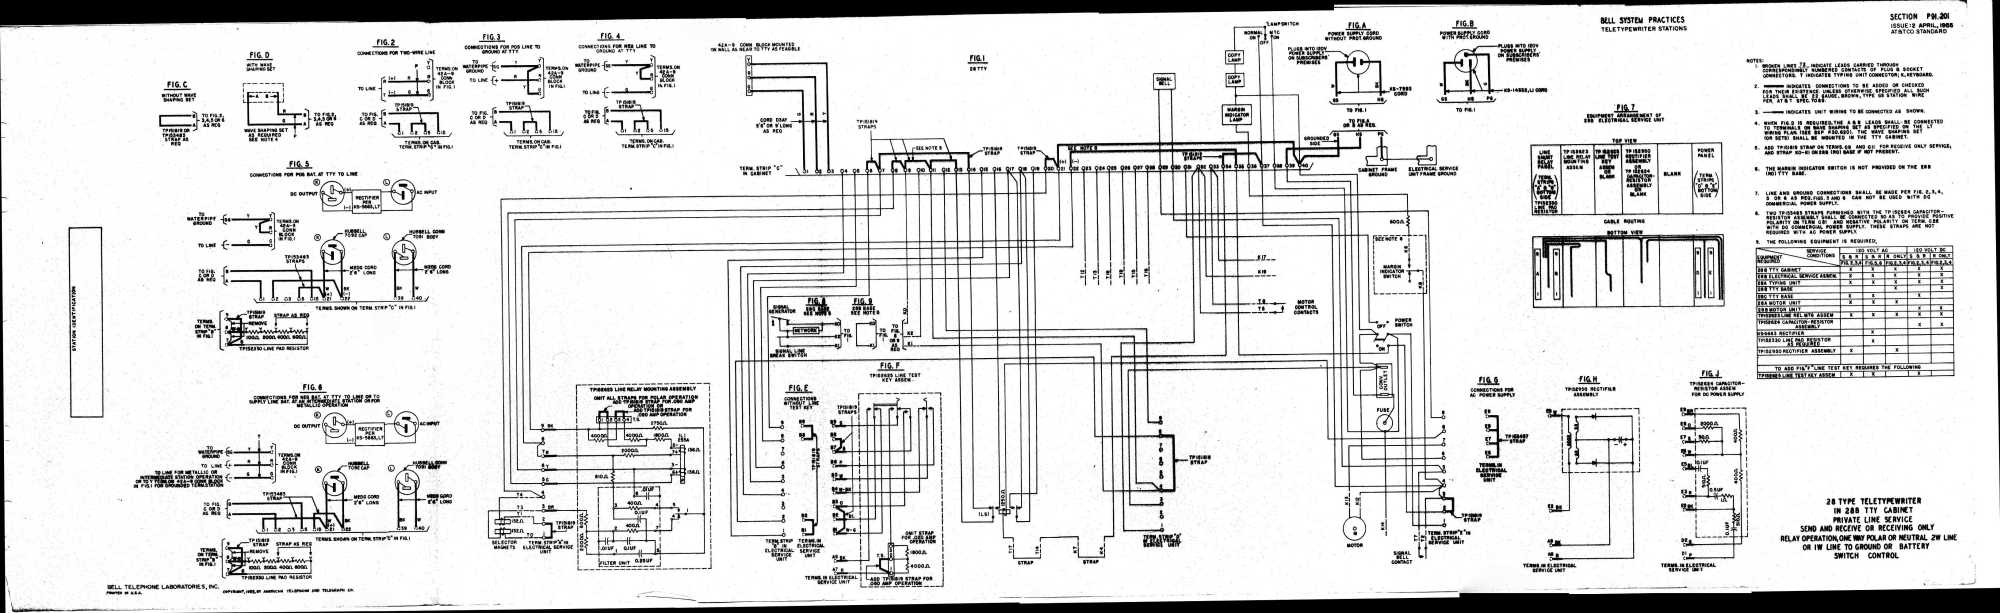 hight resolution of american ironhorse chopper wiring diagram images gallery